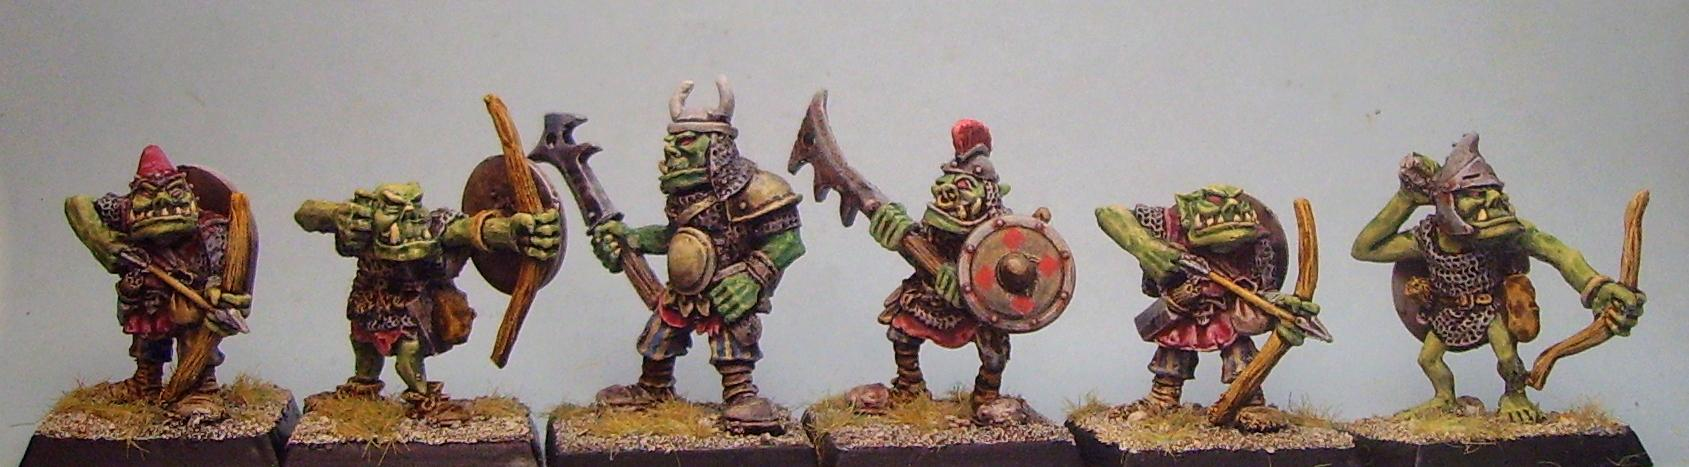 Harboths Orc Arrer Boyz and Harboth